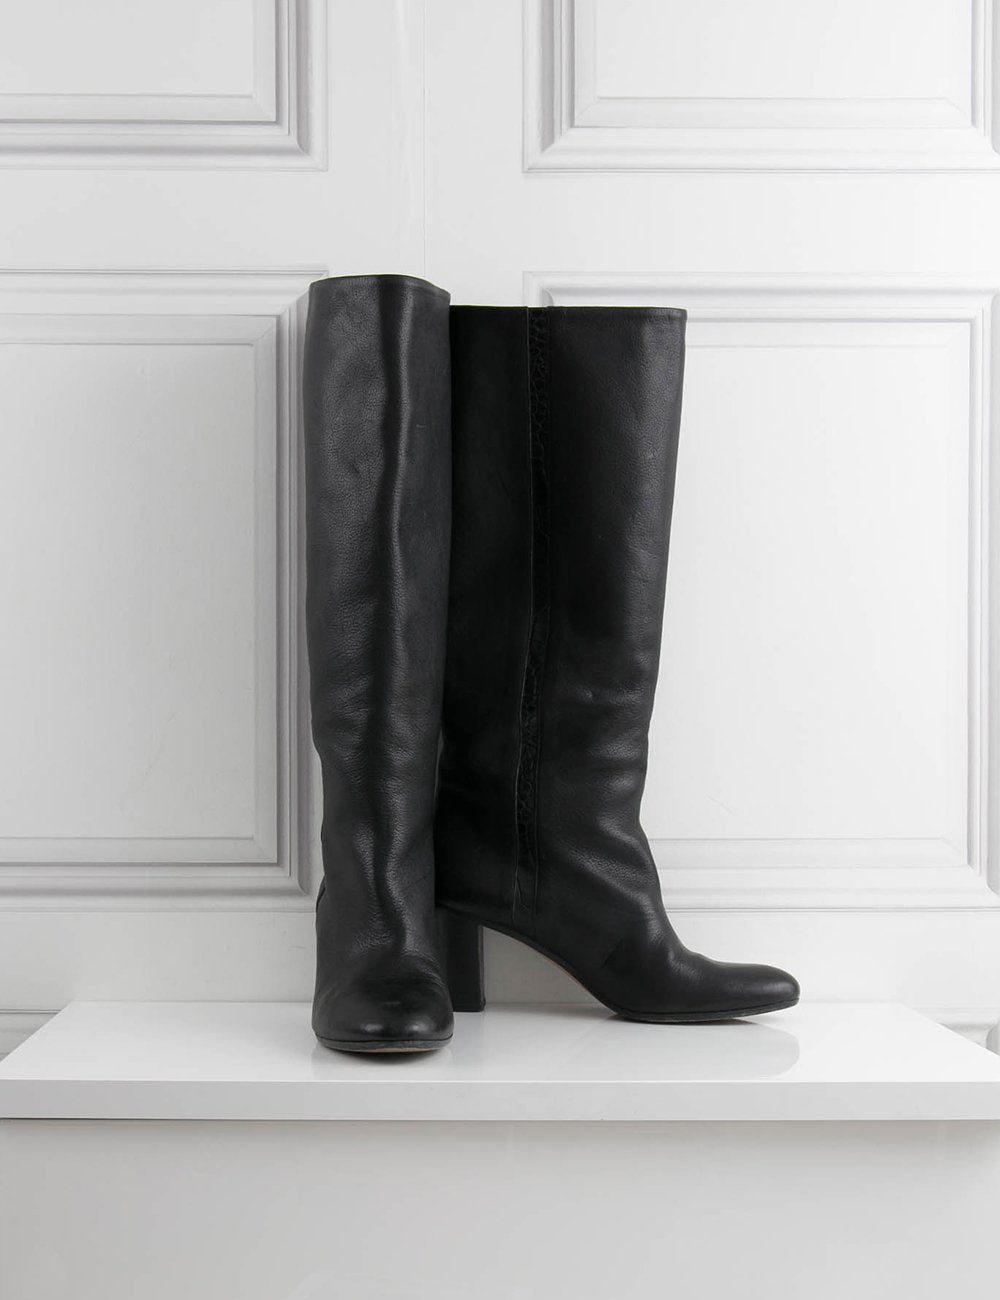 MARTIN MARGIELA SHOES Knee high leather boots